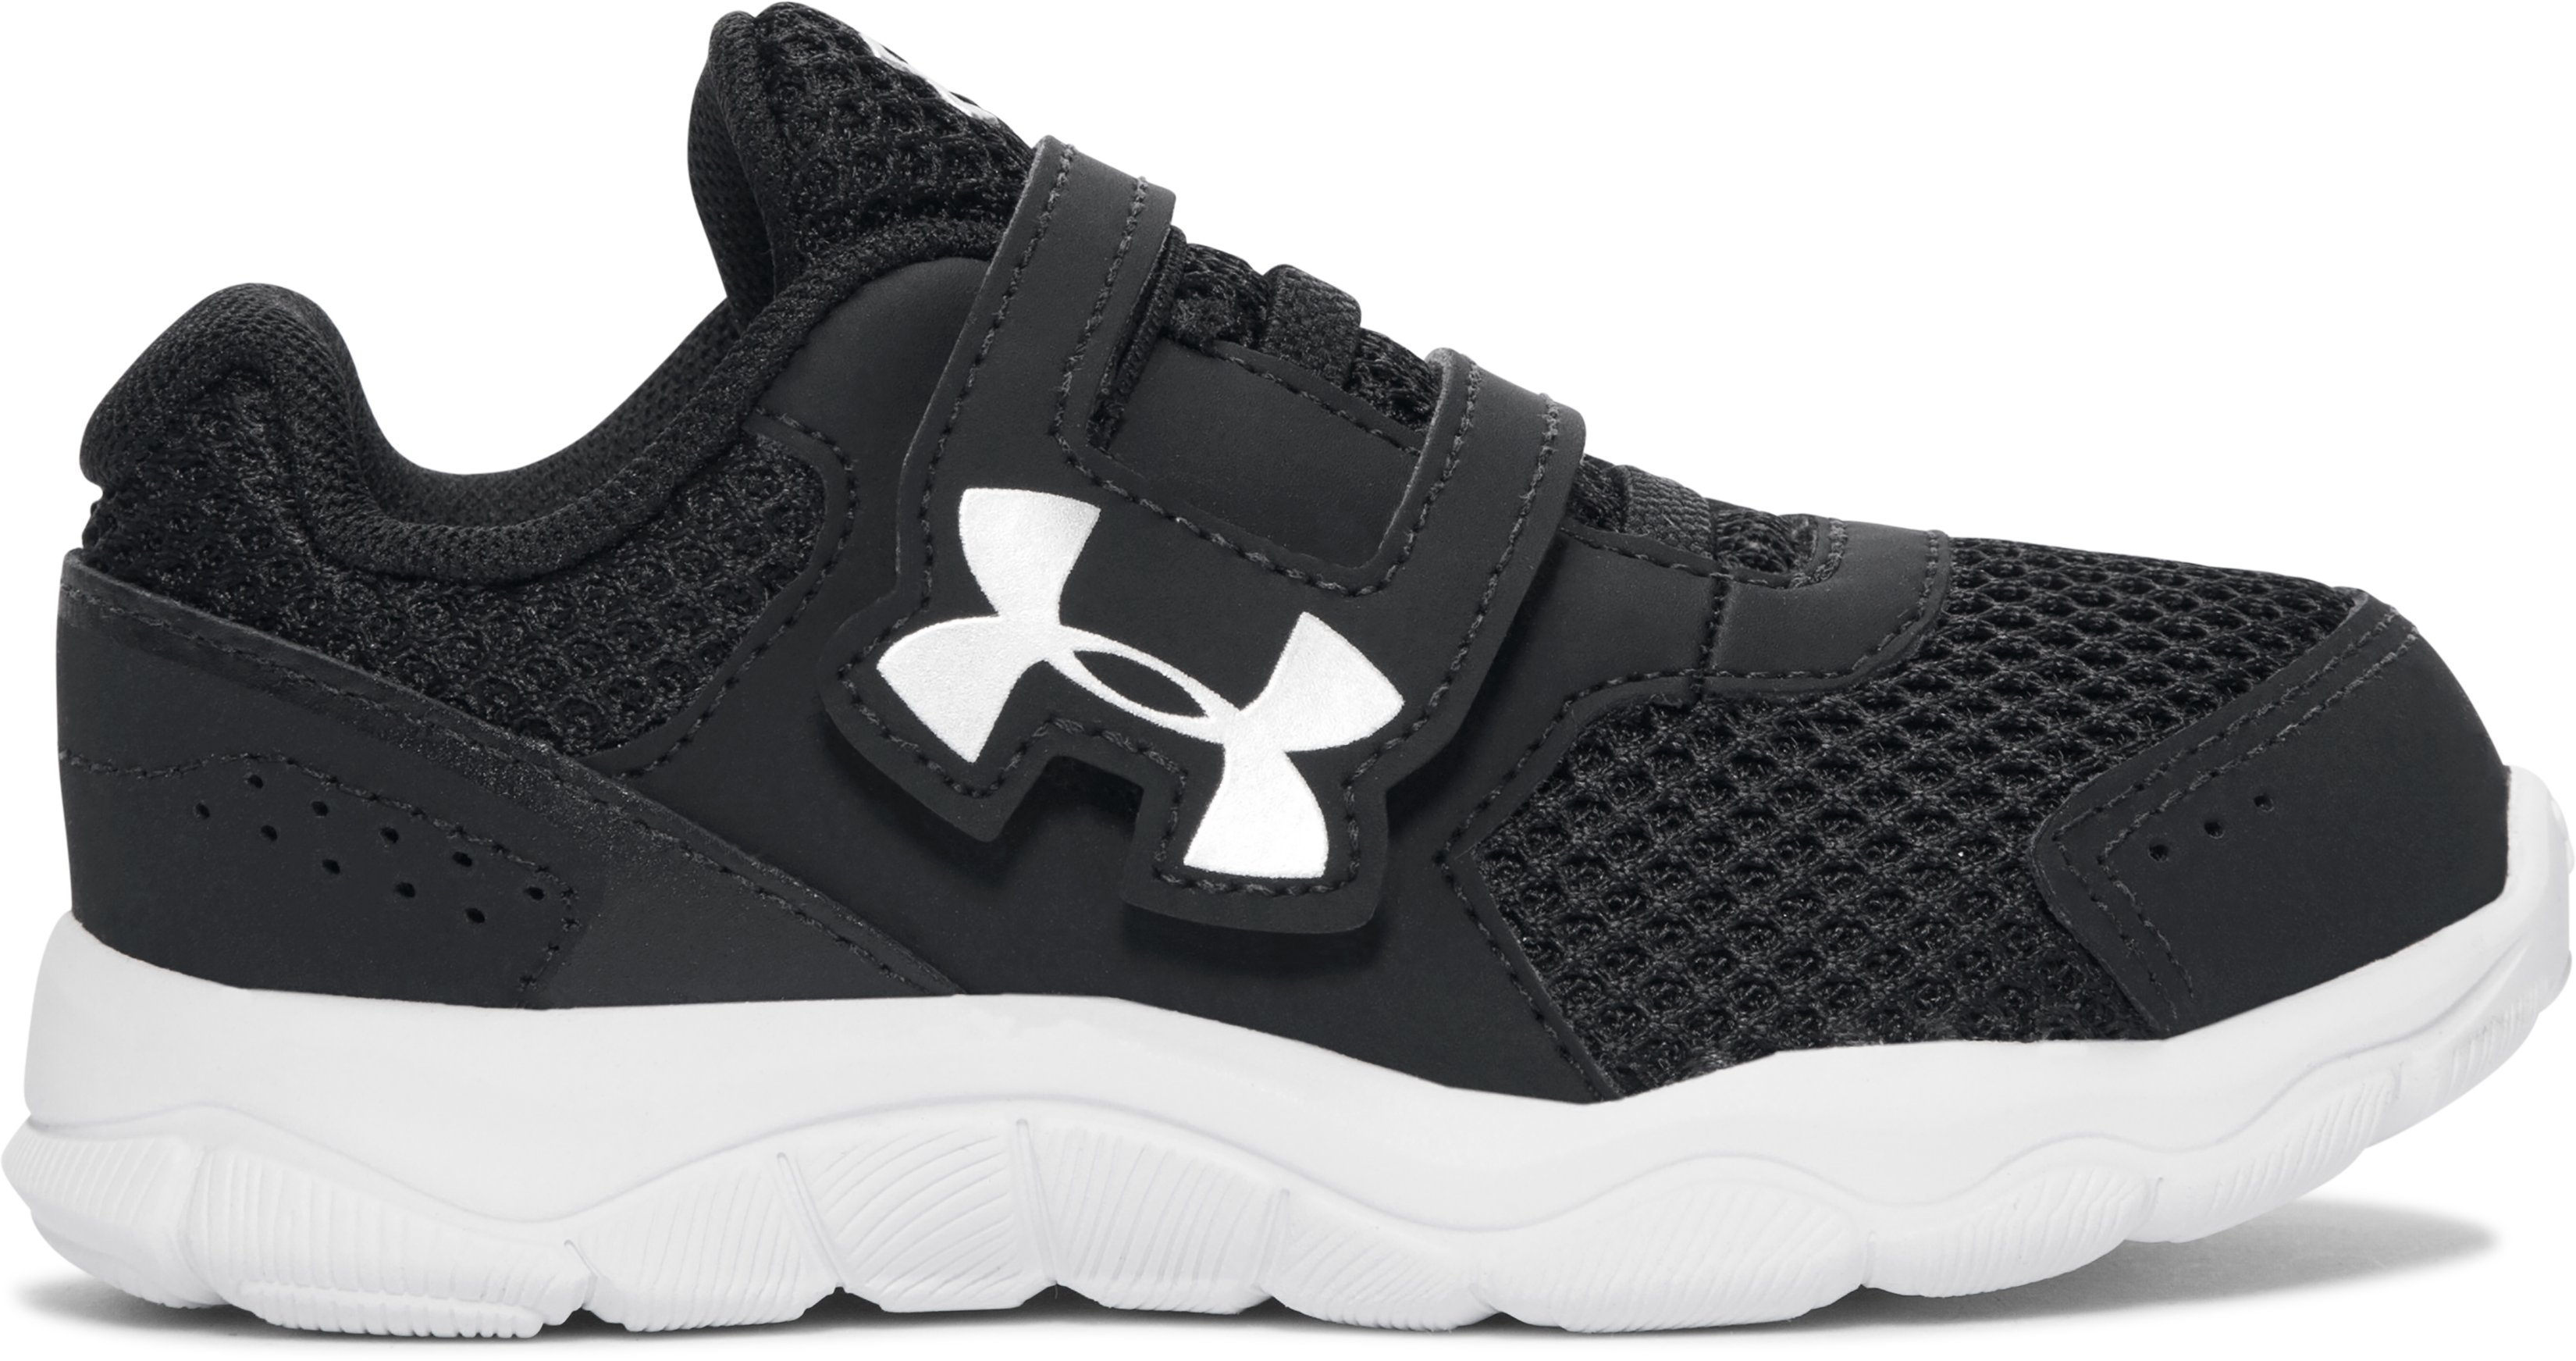 Boys' Infant UA Engage 3 Adjustable Closure Shoes, Black